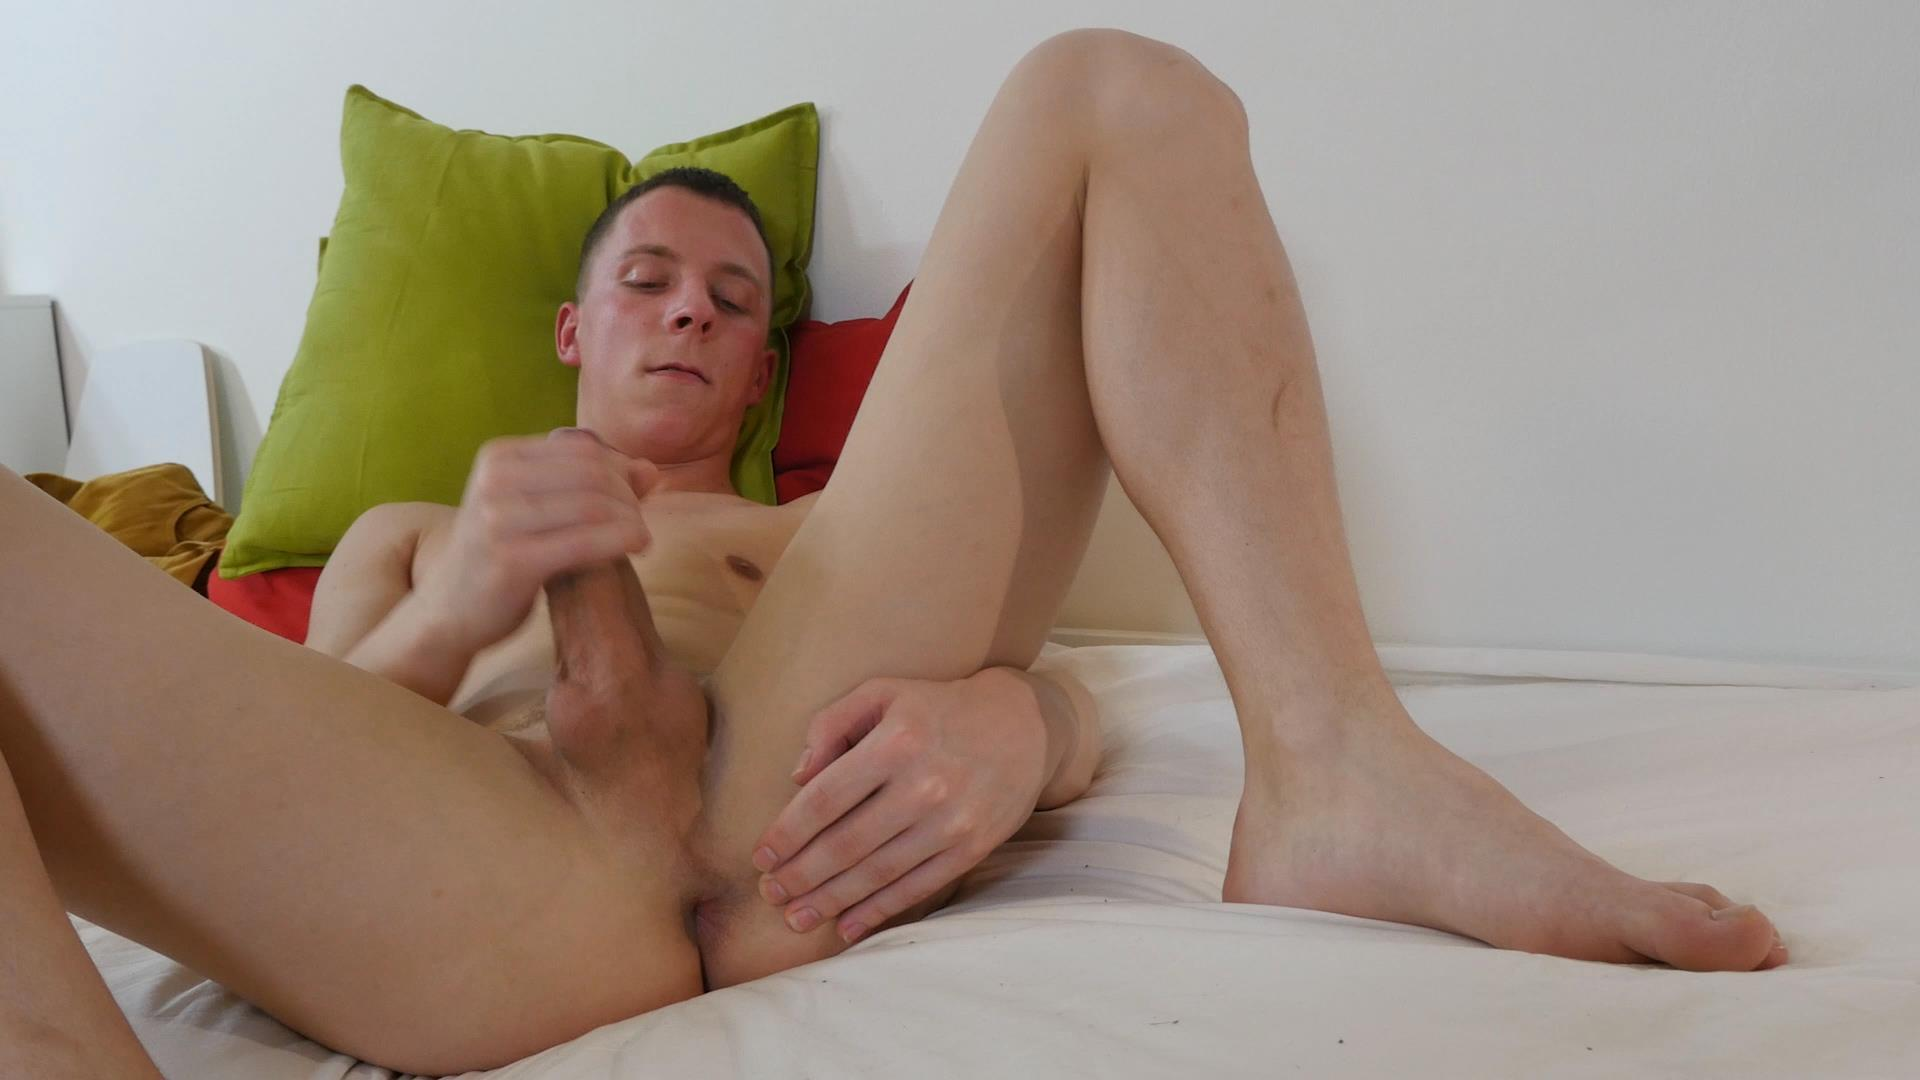 Twink Boys Party Andrew Kitt Twink With Big Uncut Cock Masturbation Amateur Gay Porn 18 Twink Andrew Kitt Rubbing A Load Out Of His Big Uncut Cock